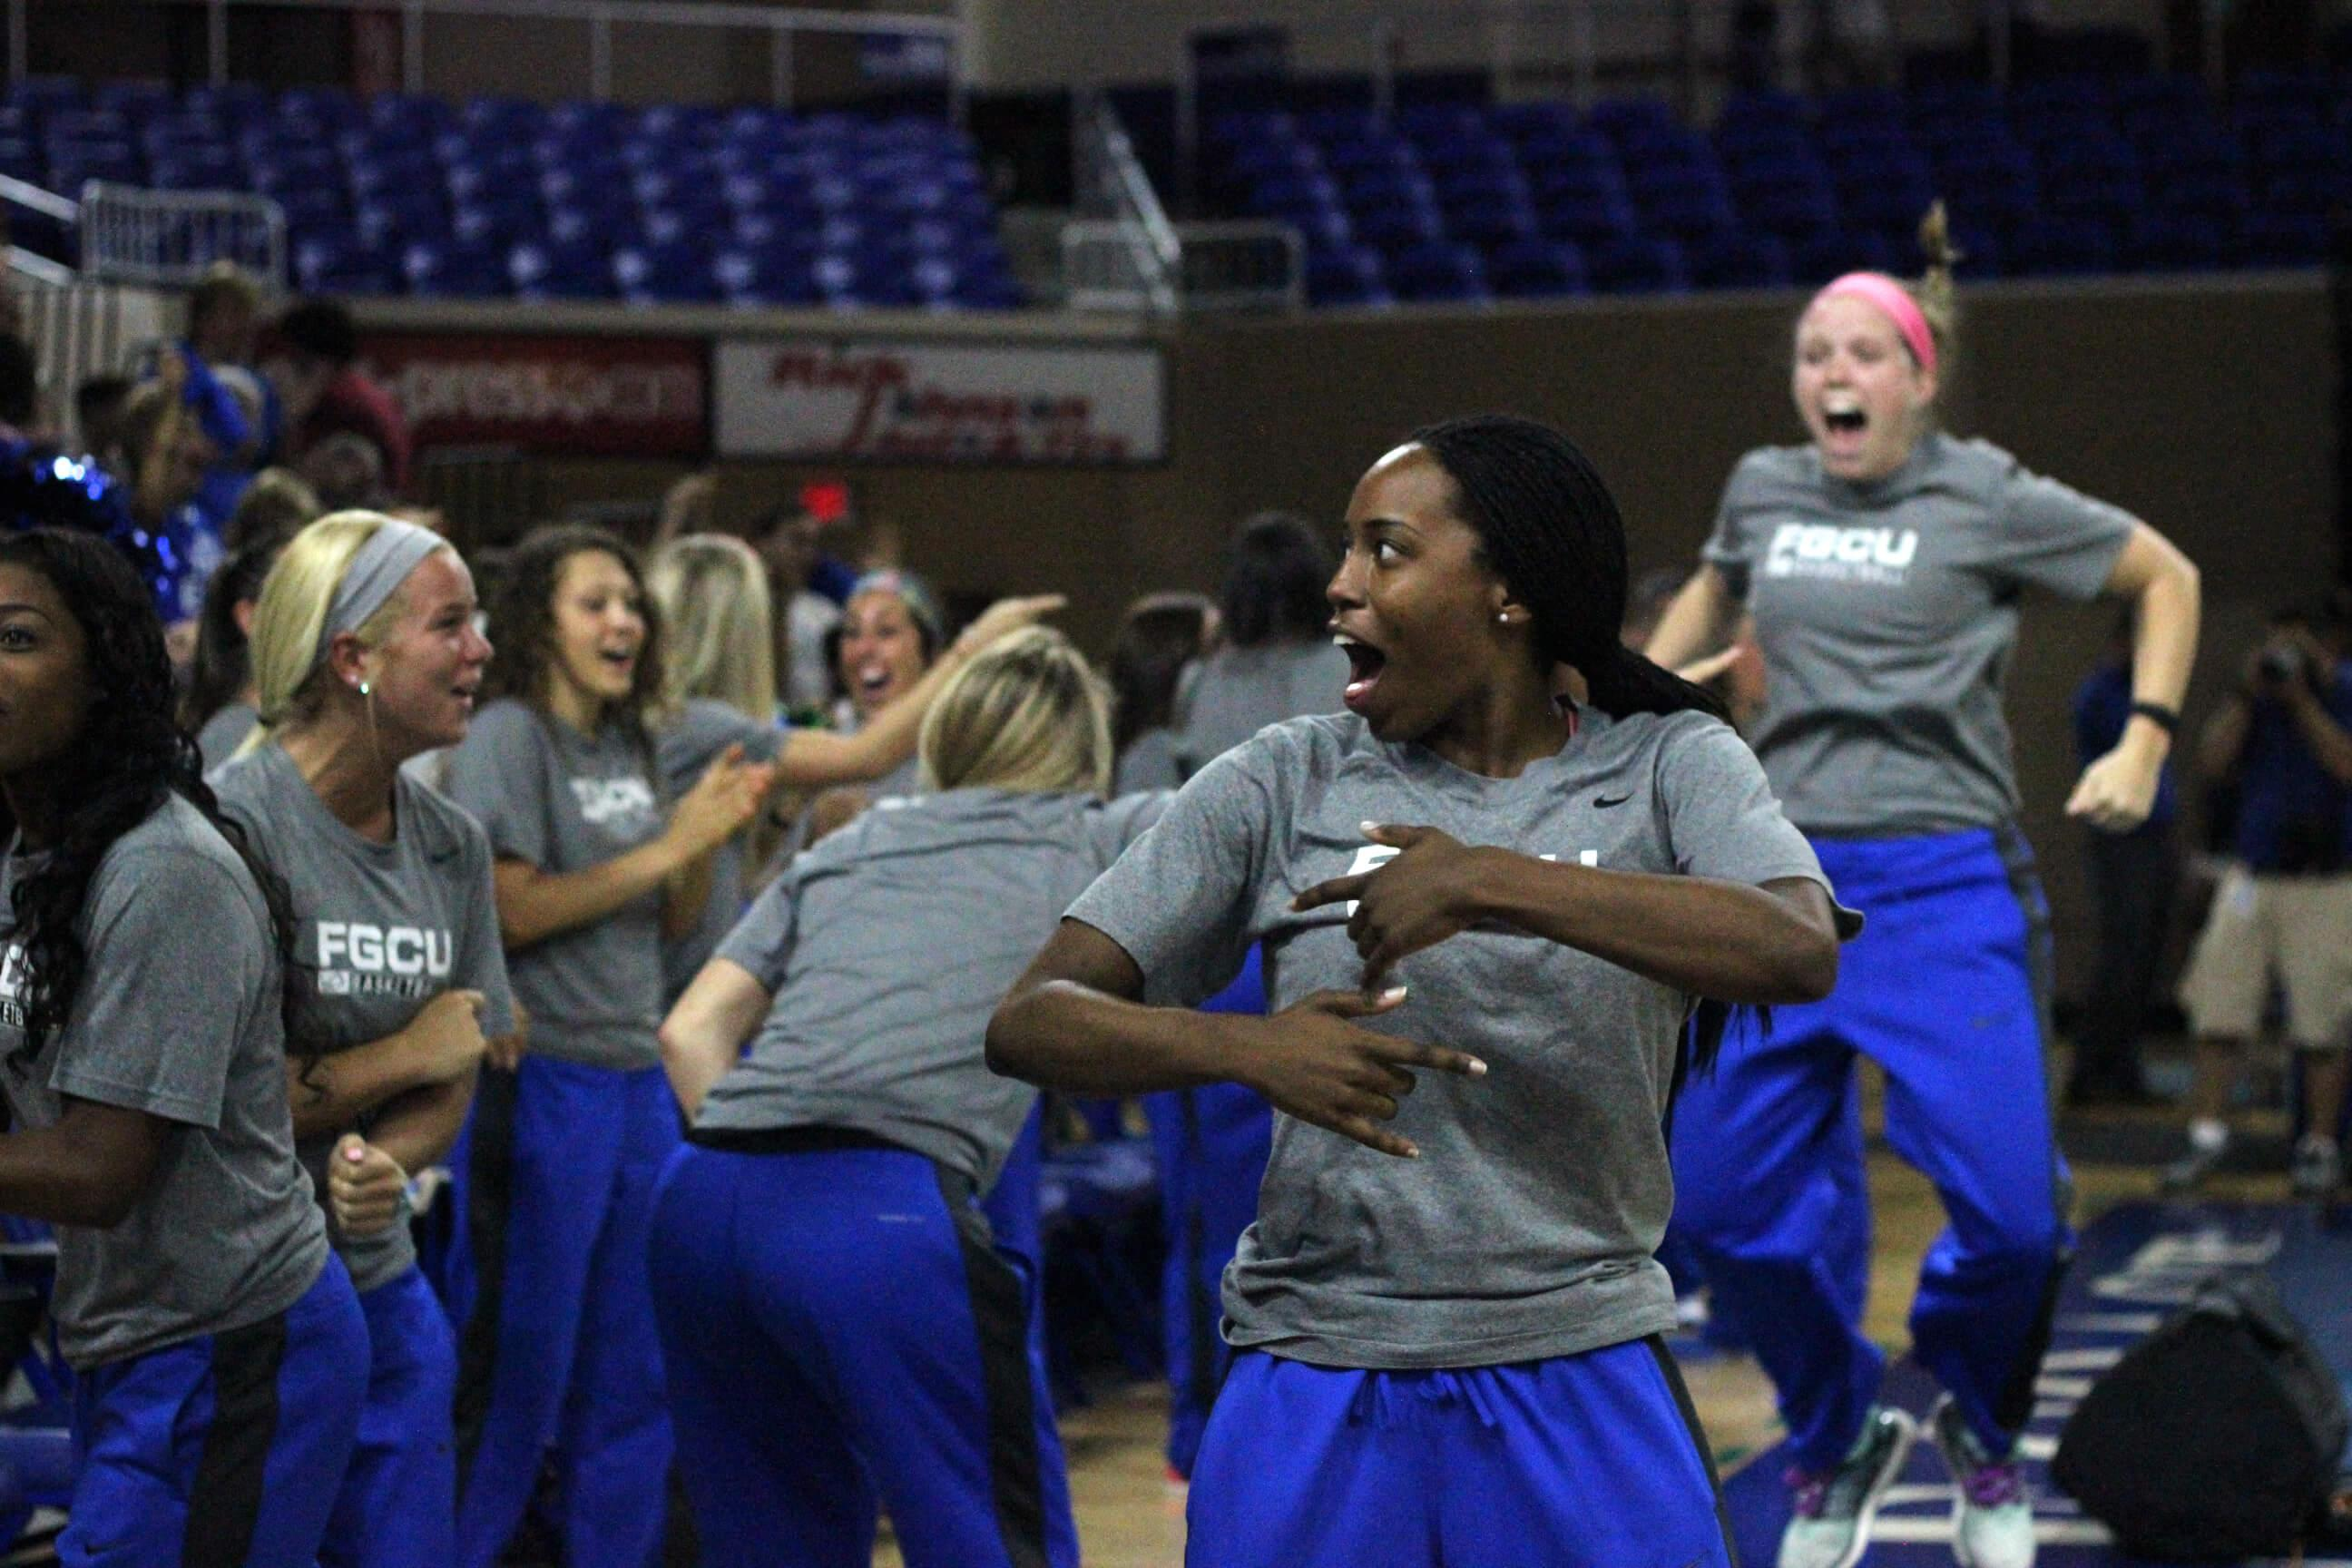 Revenge Game: FGCU slated to play Oklahoma State in NCAA Tournament's First Round